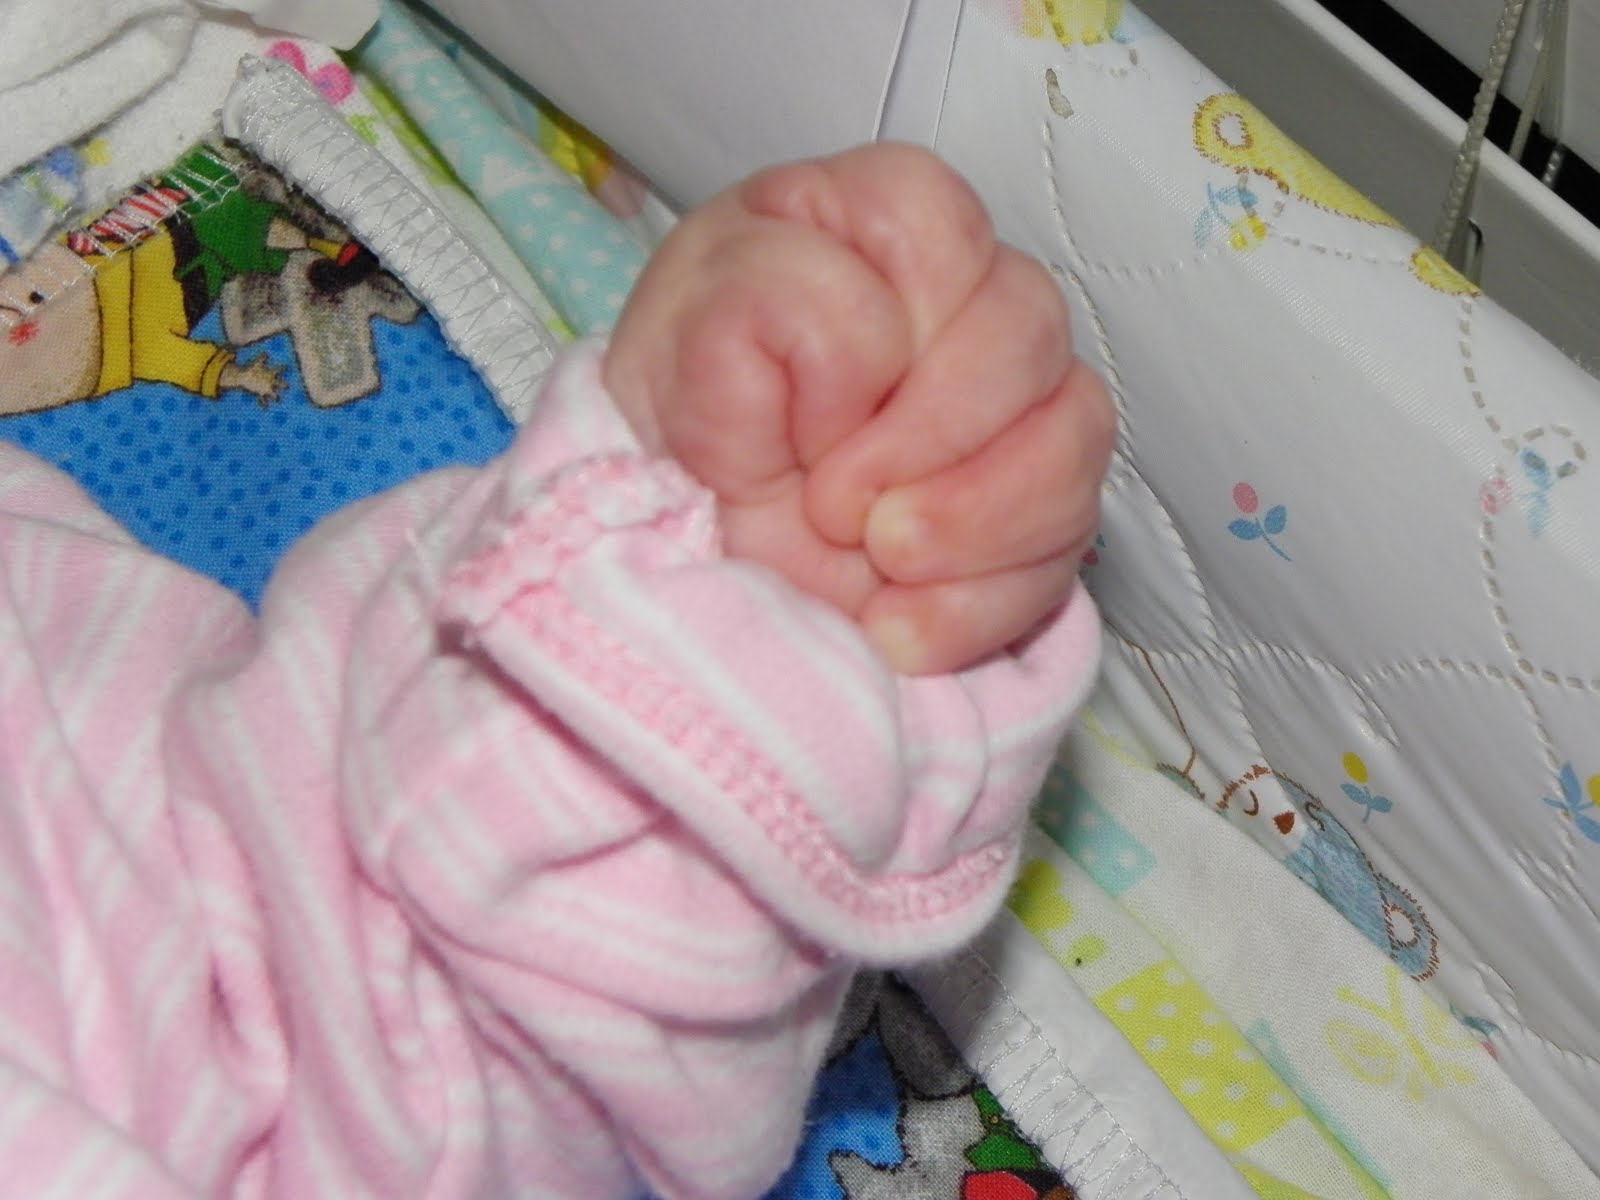 babies with fisted hands